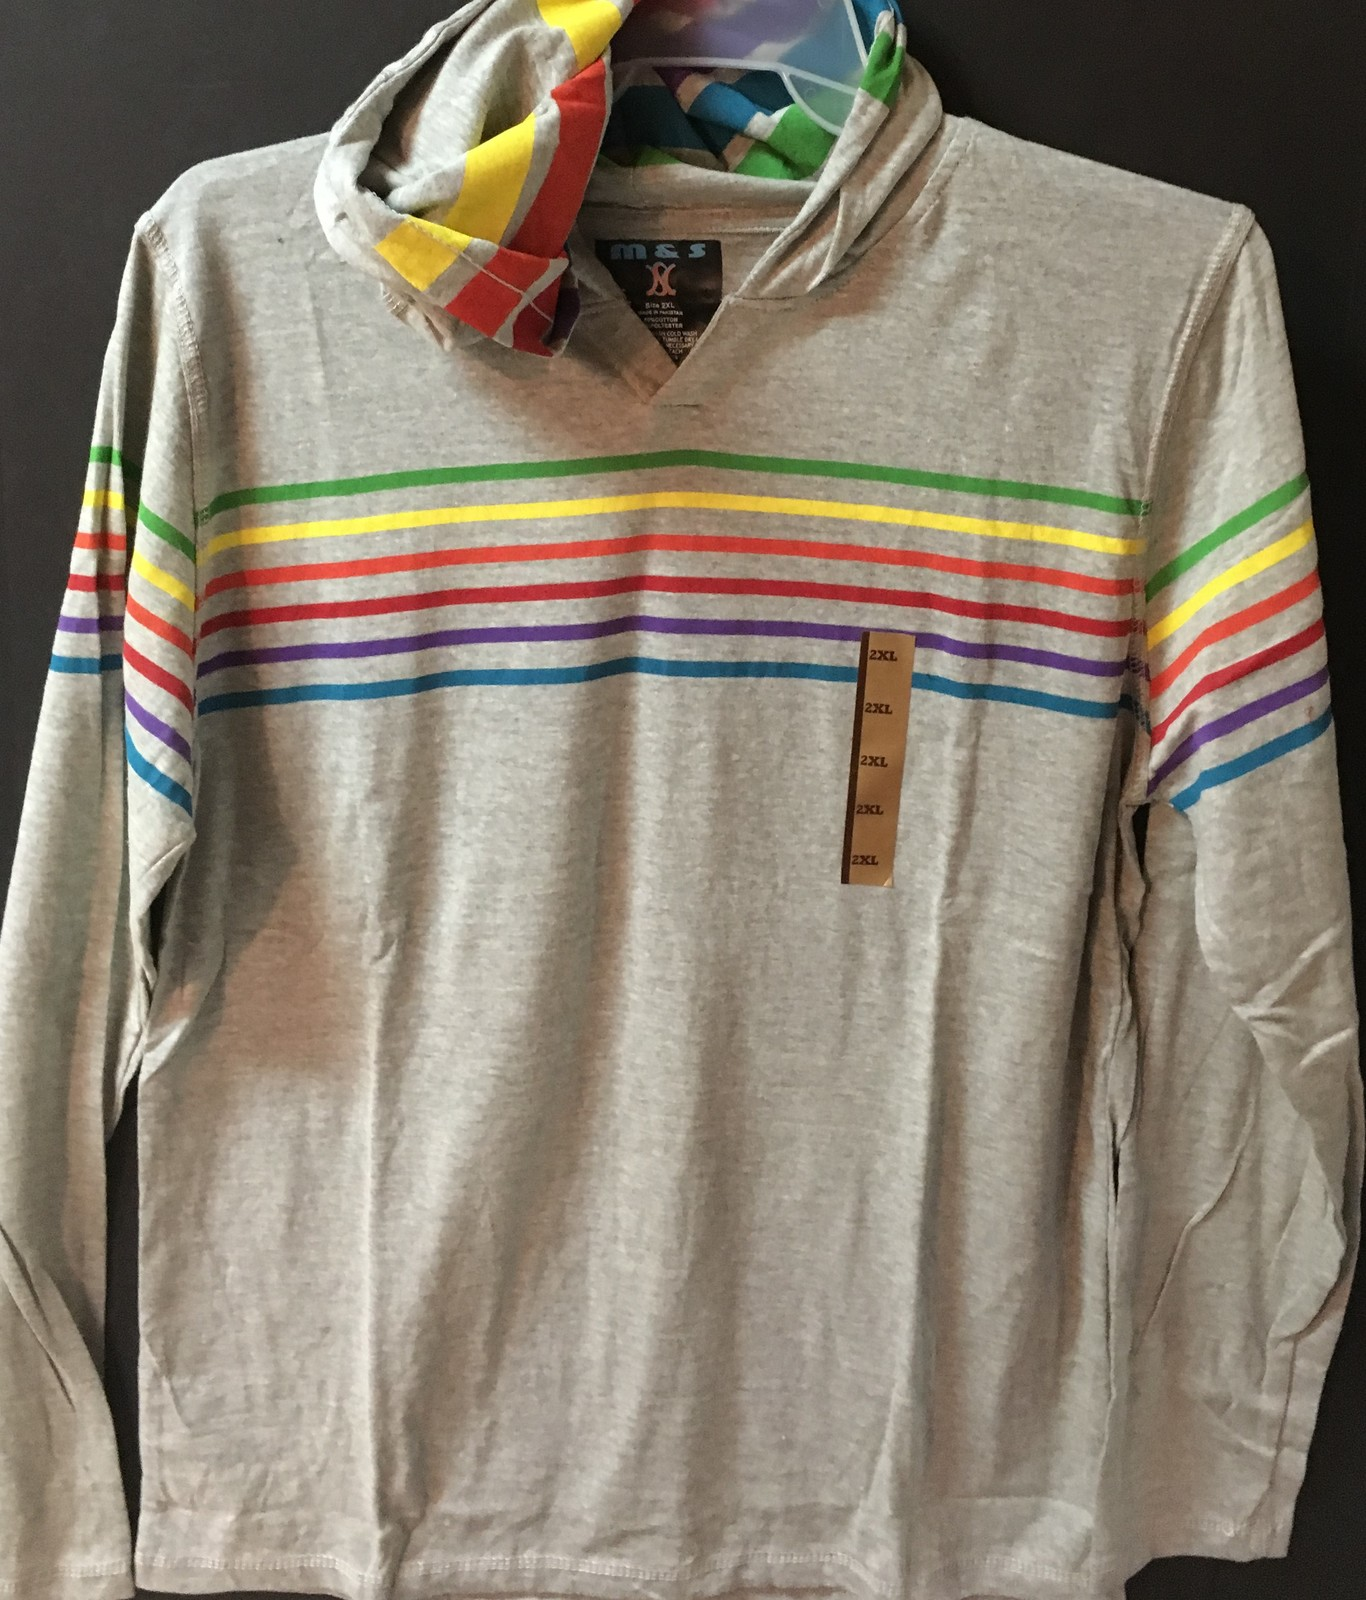 M&S Light Weight Hoodie Shirt Gray w/Rainbow Stripes NWT Sz 2XL, M